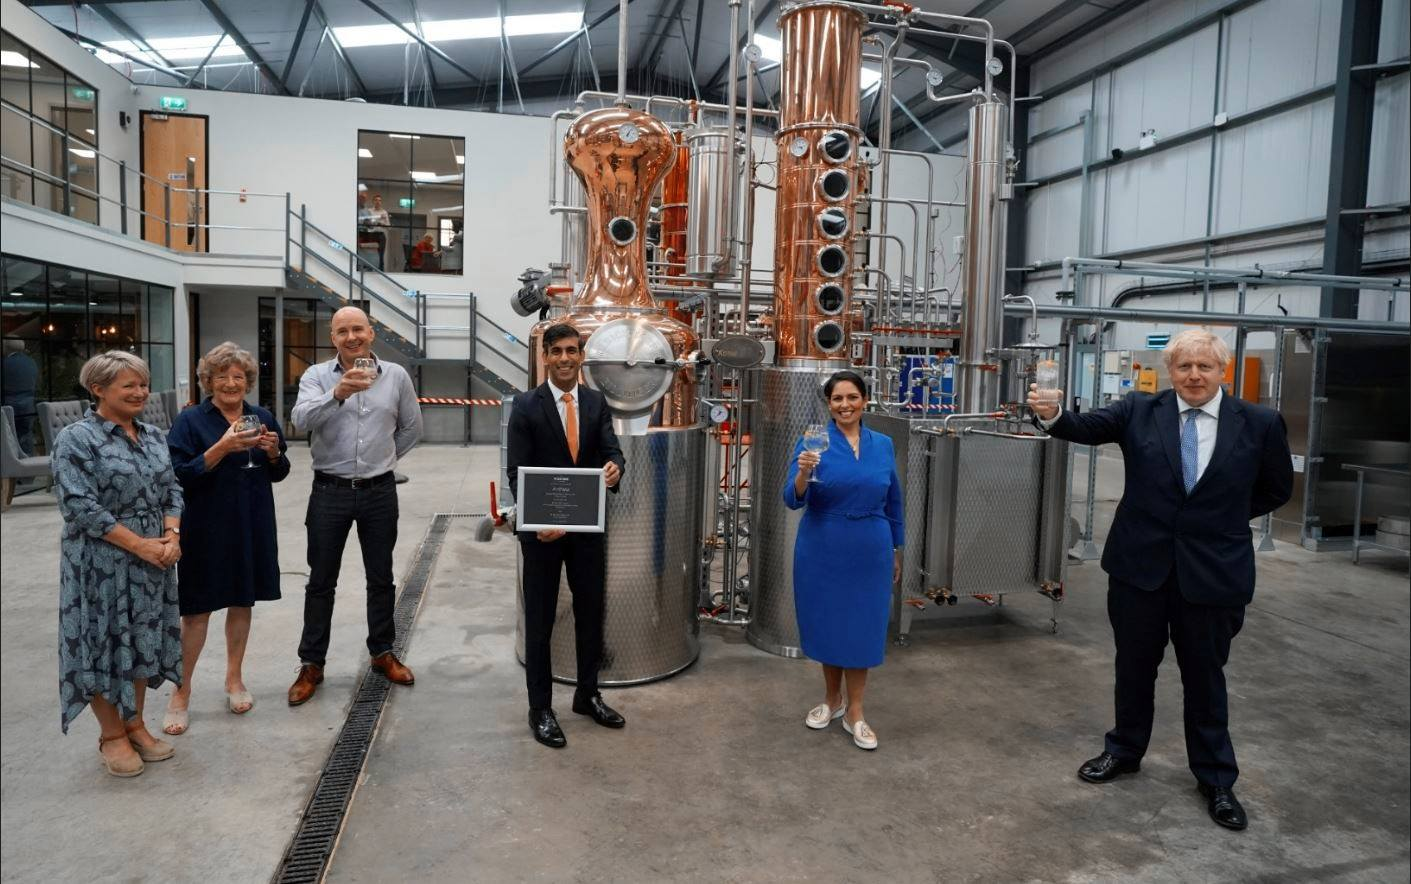 Official opening of Masons new distillery with the Ryebeck-supplied Kothe stills